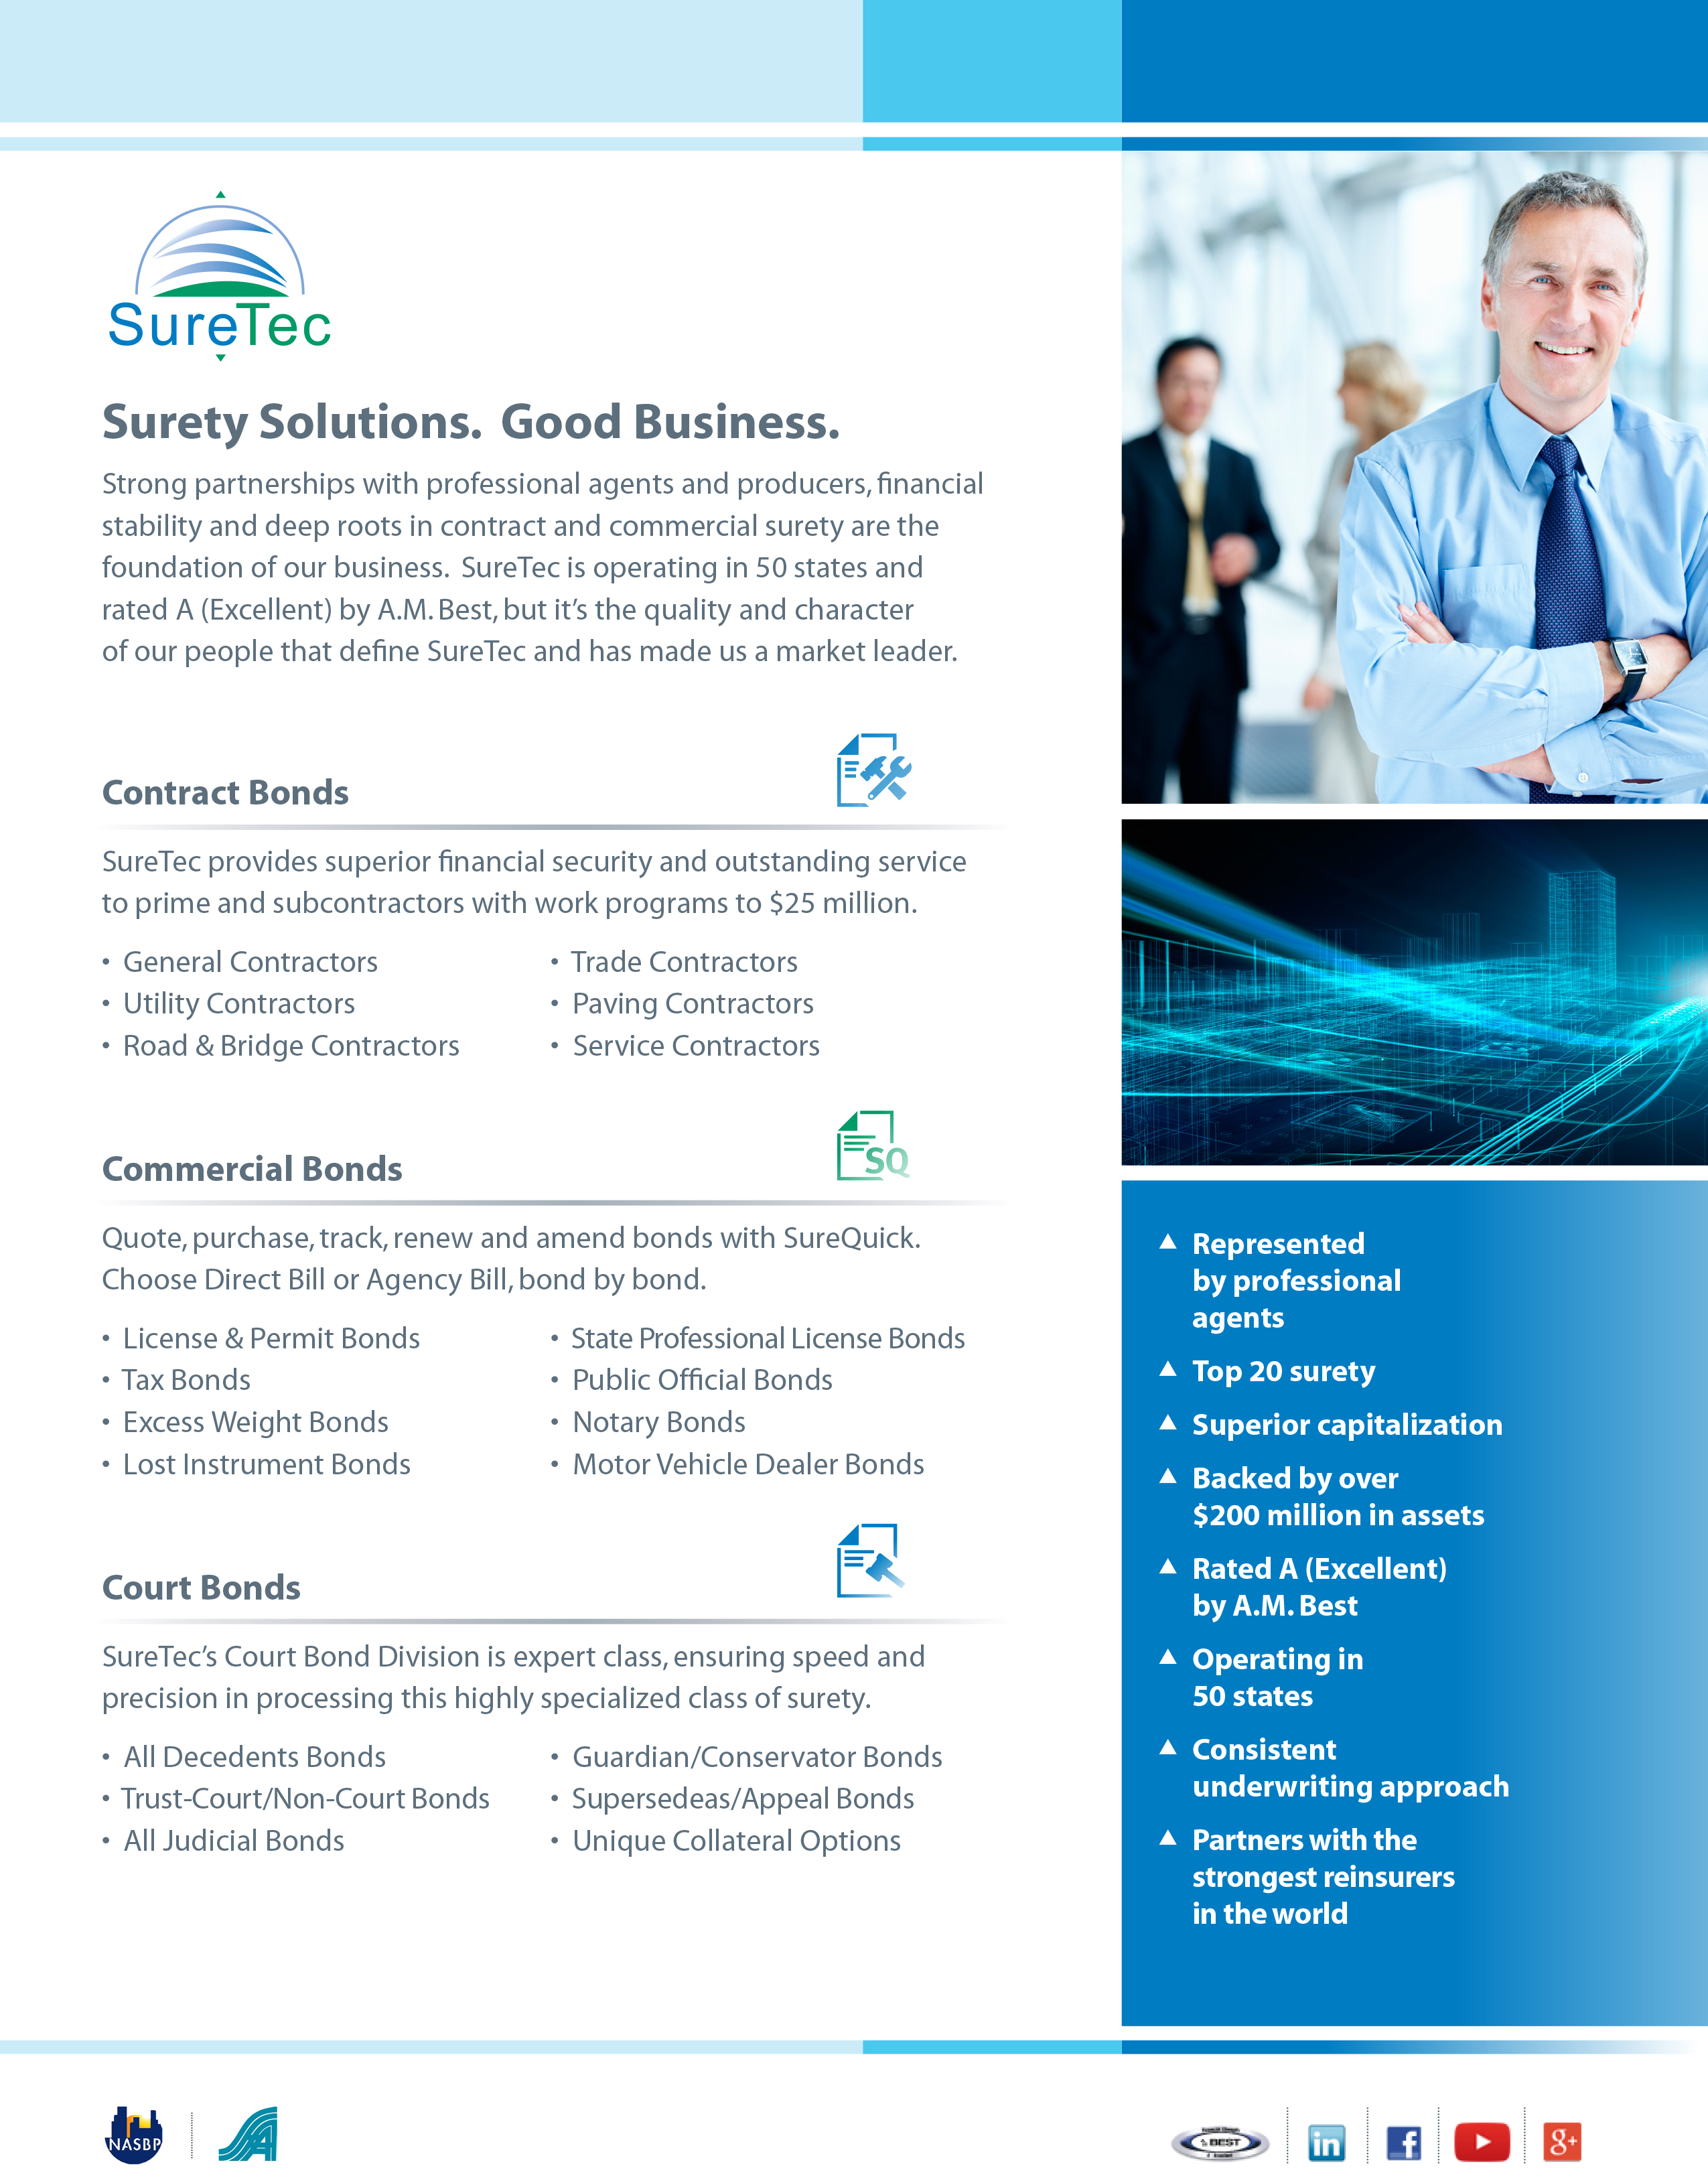 Learn more about SureTec